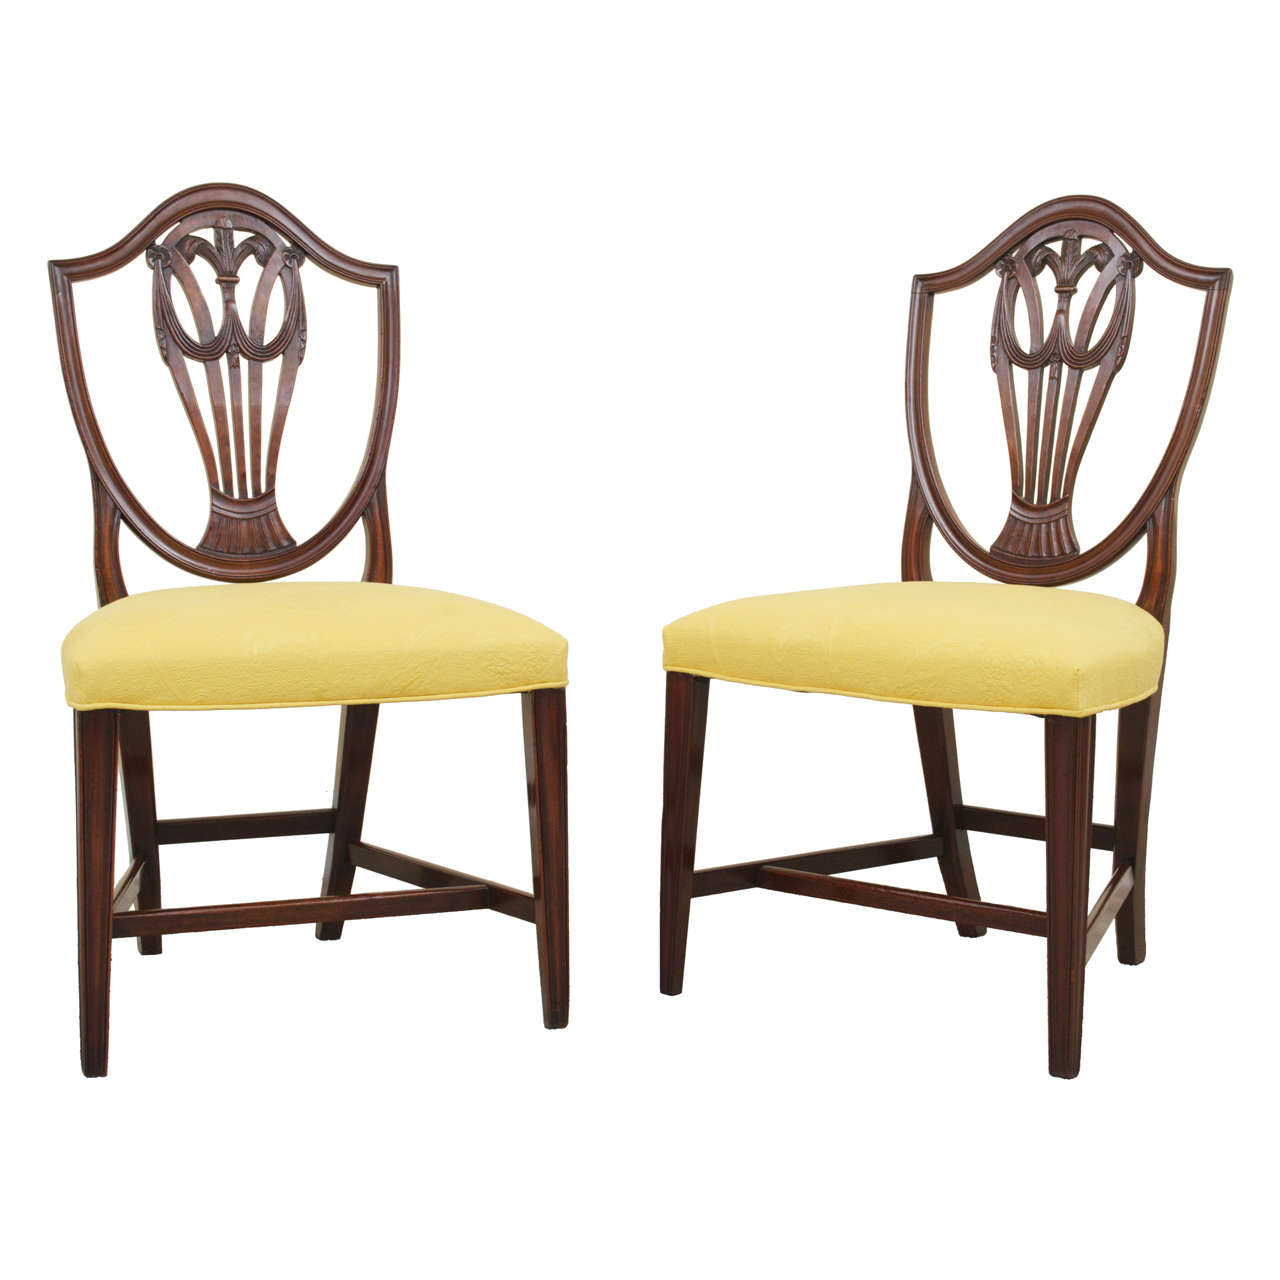 Pair Of 19th Century Mahogany Hepplewhite Style Shield Back Side Chairs At 1stdibs